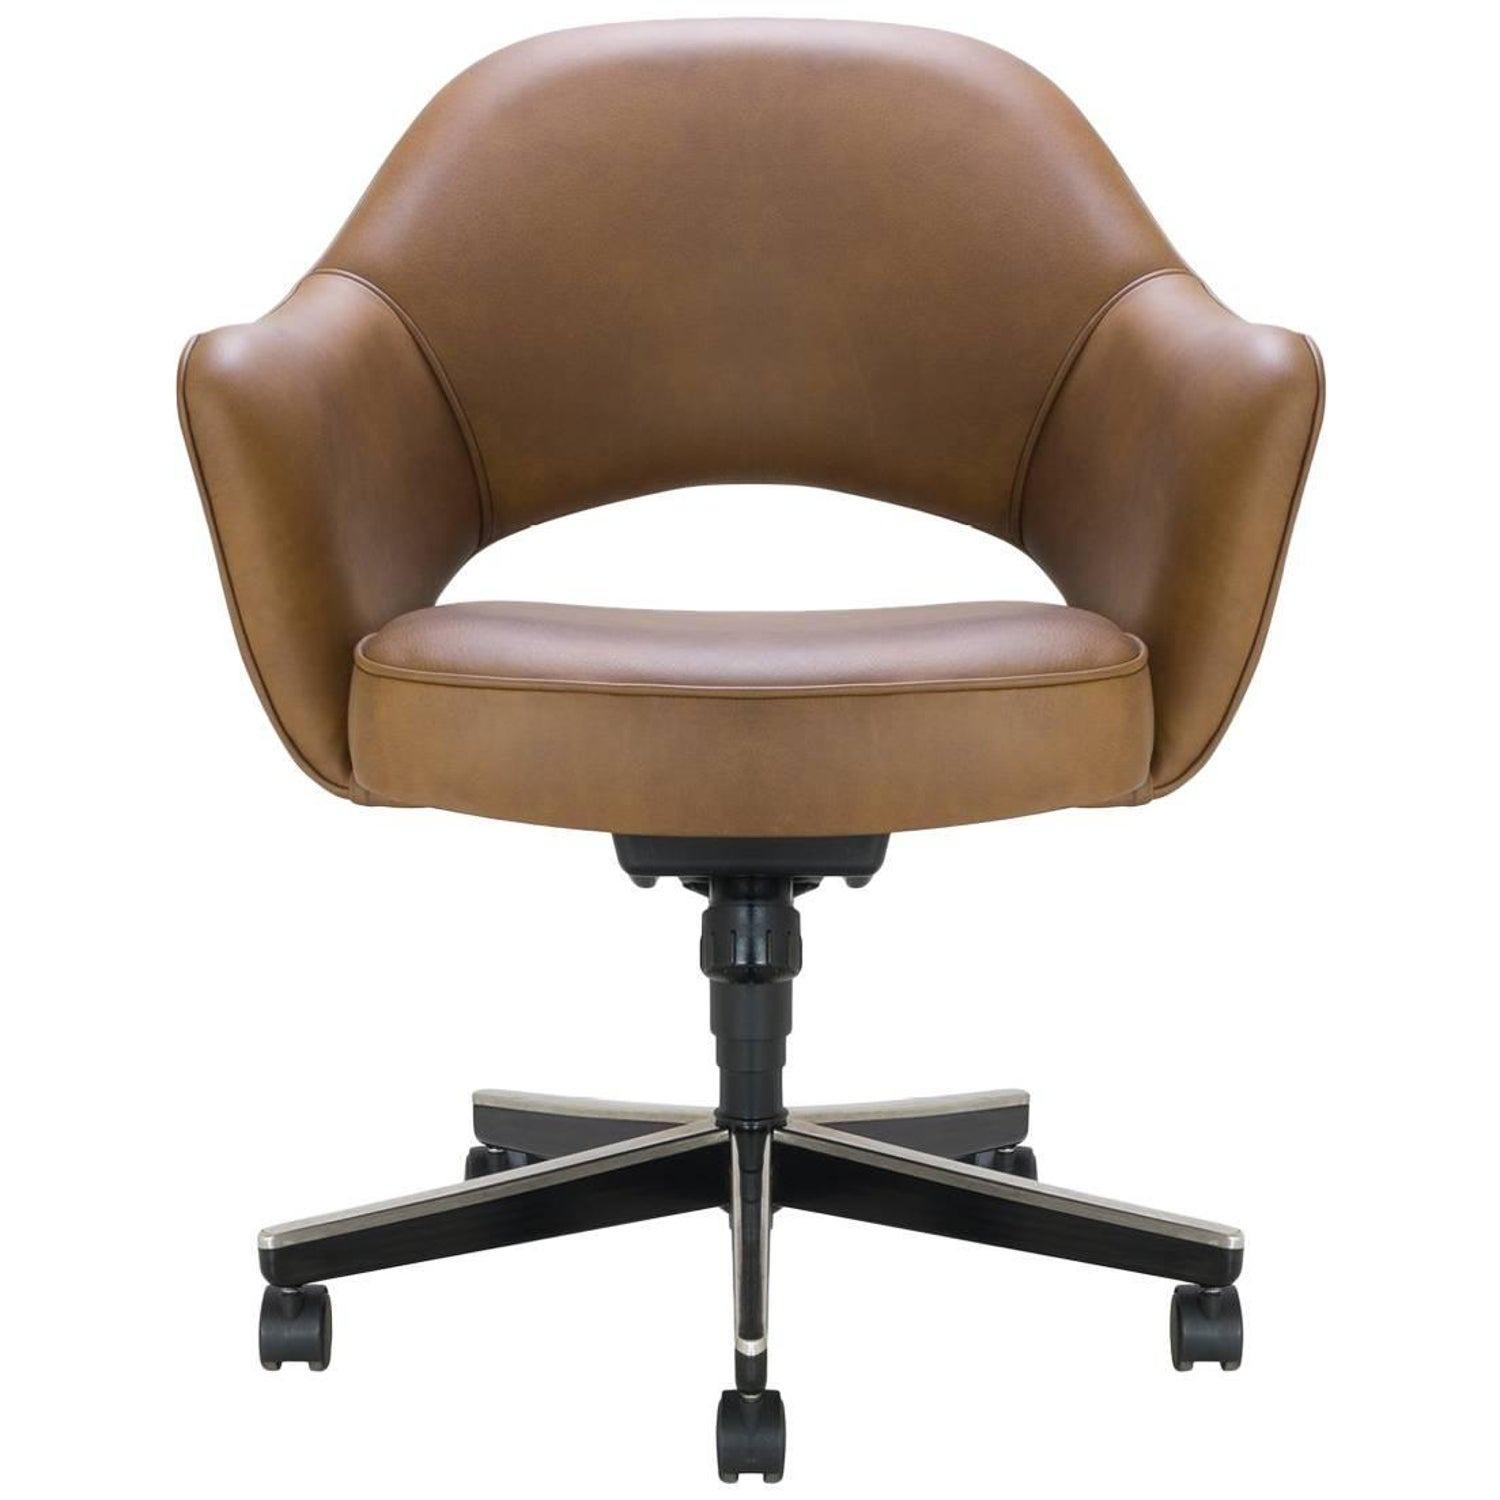 Pair of Steelcase Leather and Fabric Arm Chairs For Sale at 1stdibs